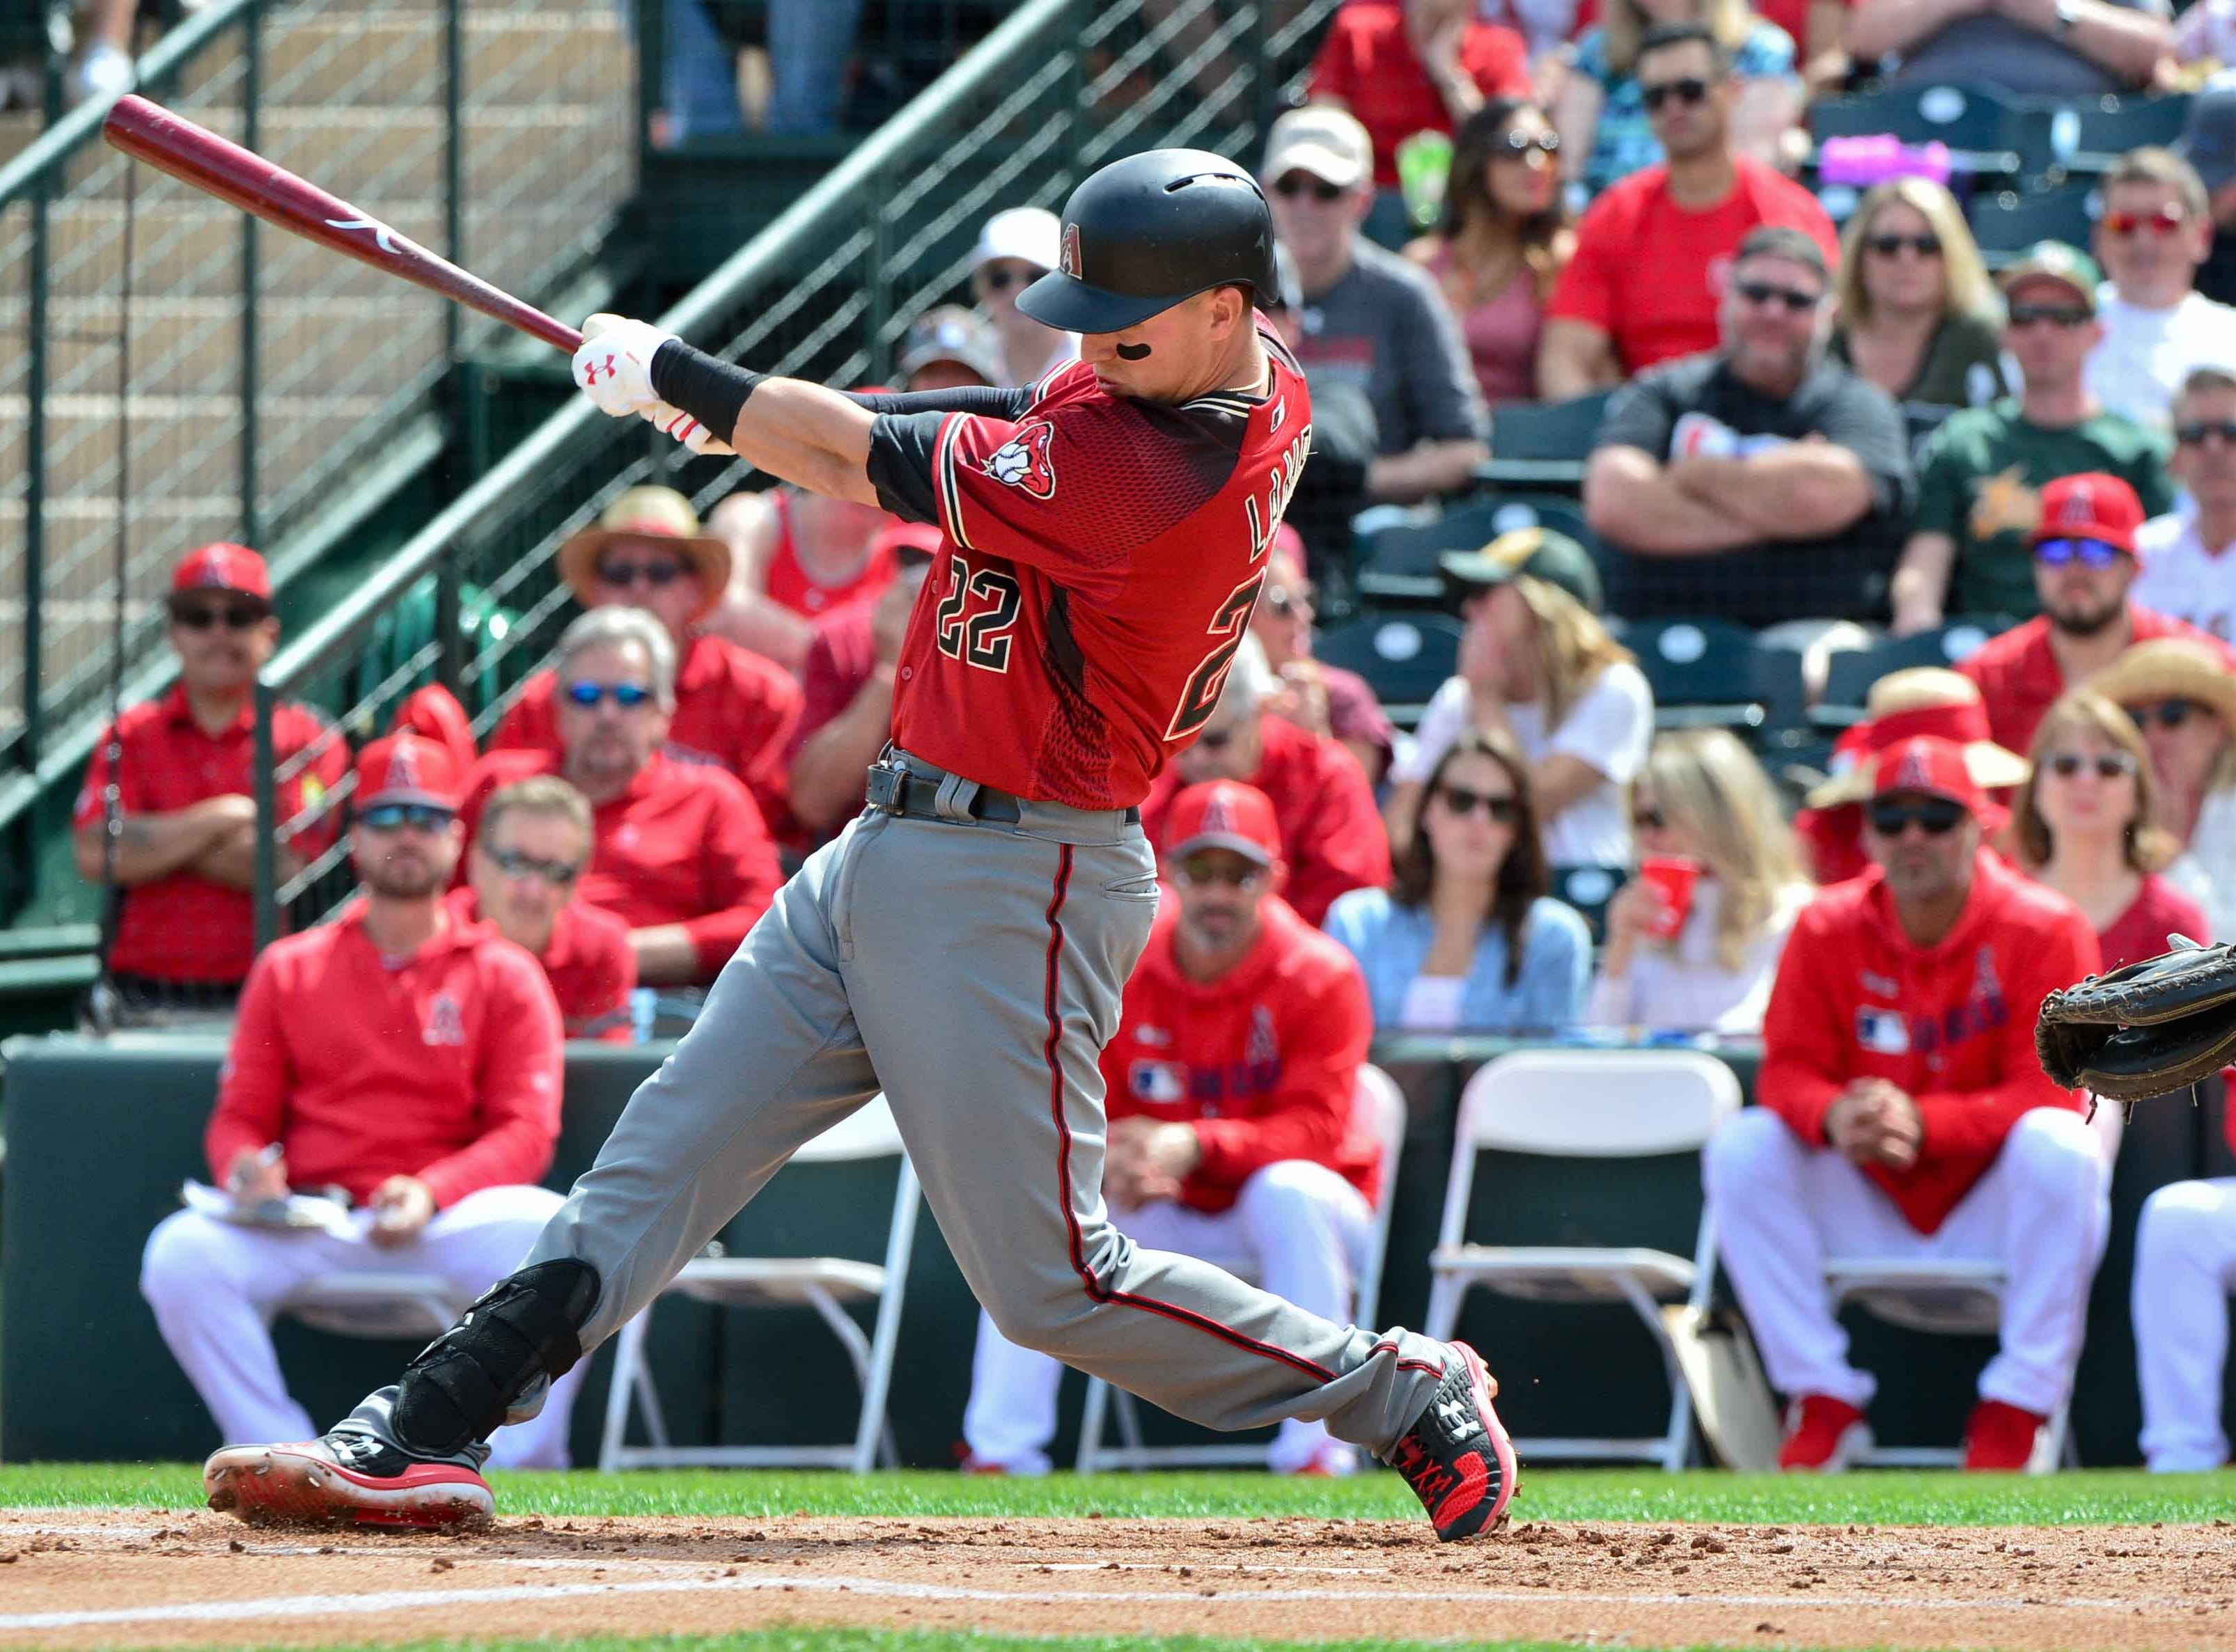 Mar 15, 2019; Tempe, AZ, USA; Arizona Diamondbacks third baseman Jake Lamb (22) grounds out in the second inning against the Los Angeles Angels at Tempe Diablo Stadium. Mandatory Credit: Matt Kartozian-USA TODAY Sports